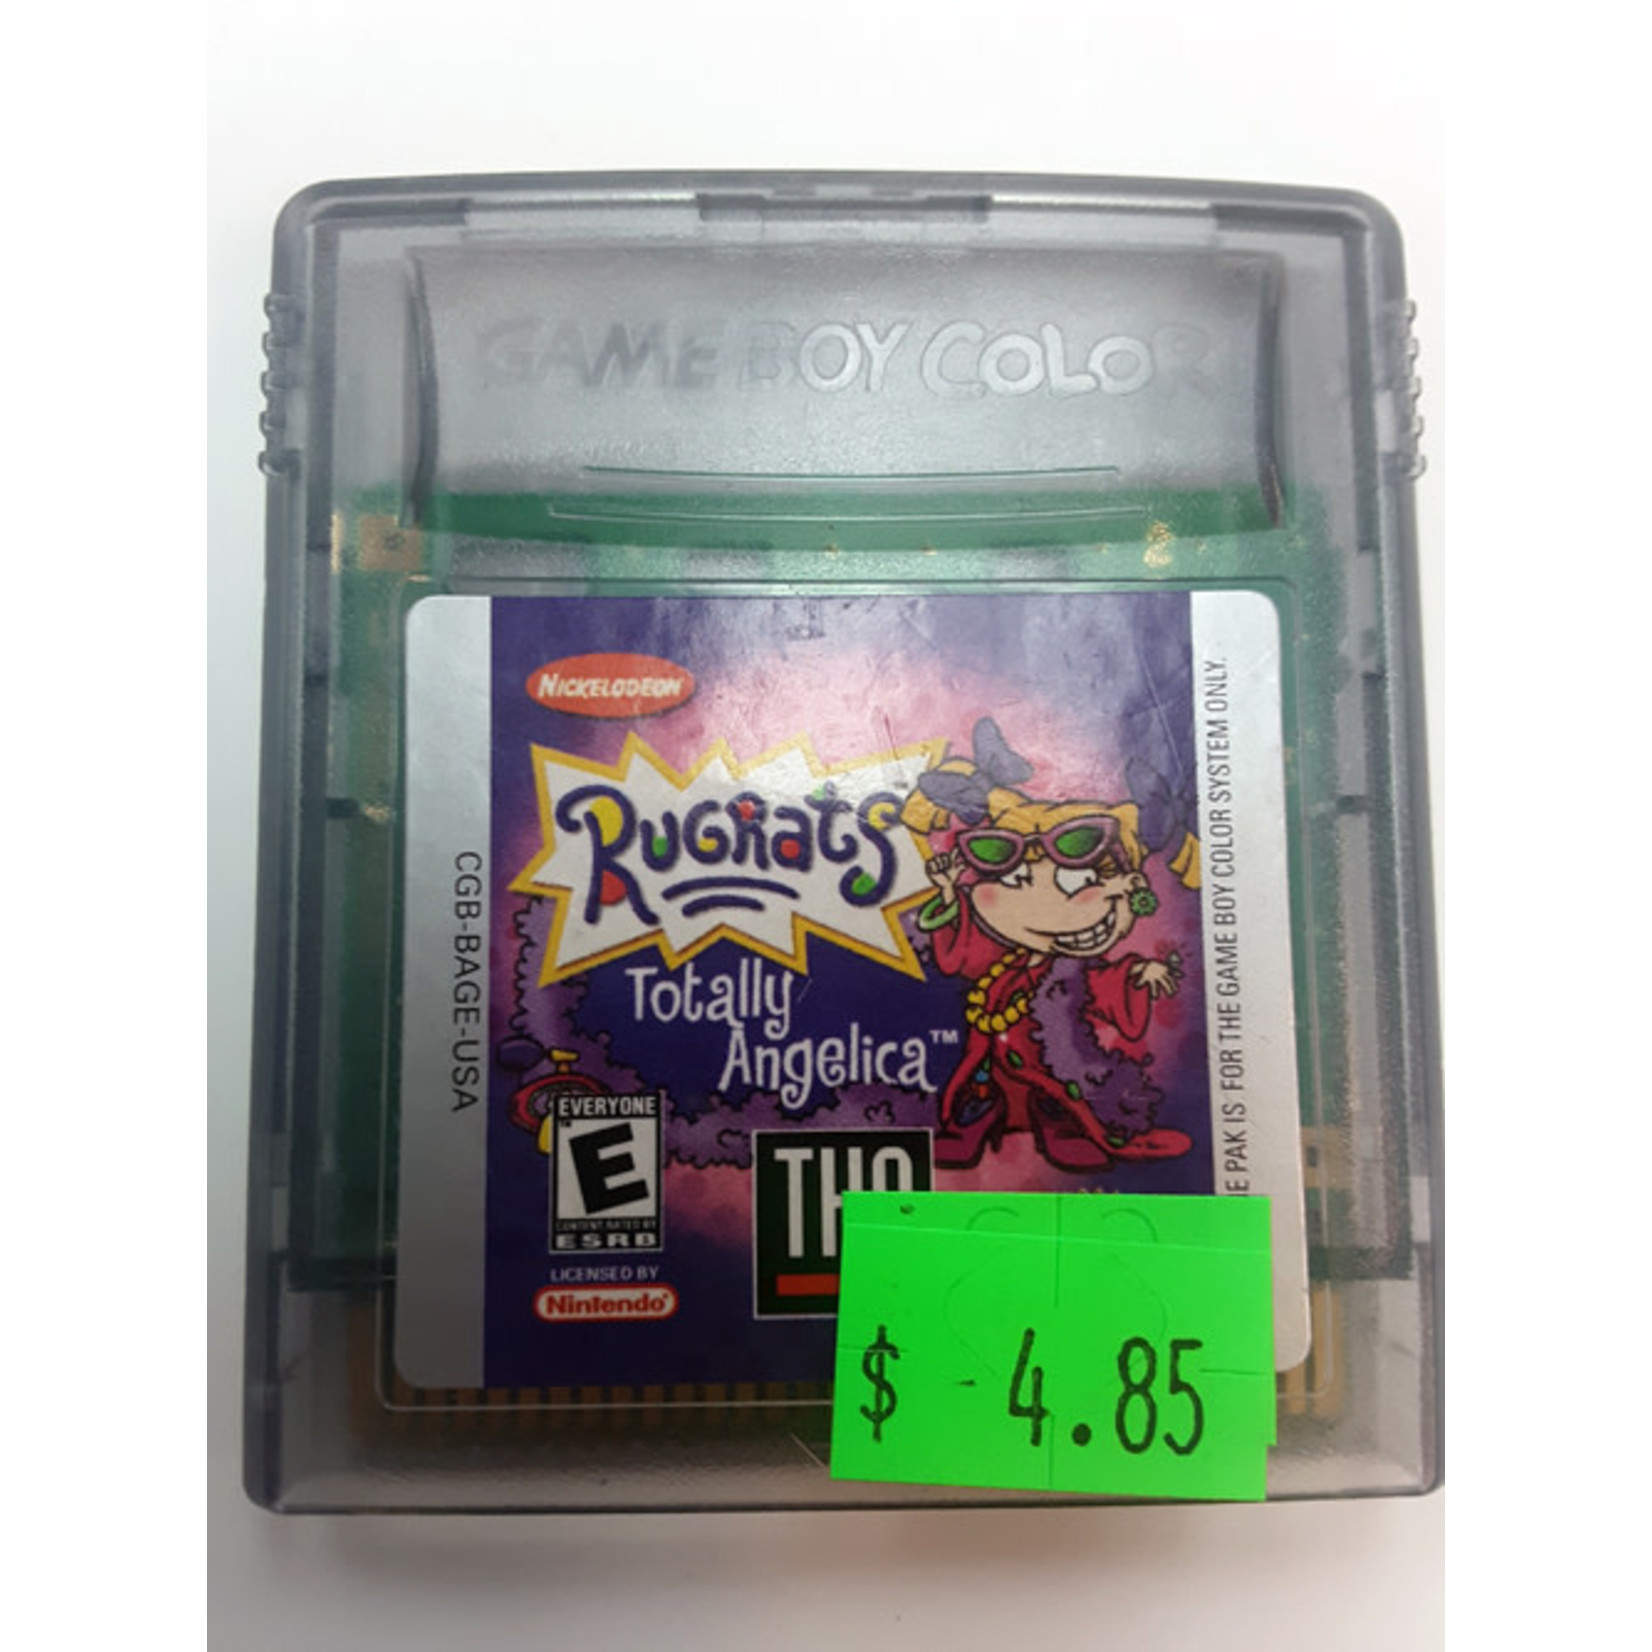 GBCu-Rugrats Totally Angelica (cartridge)